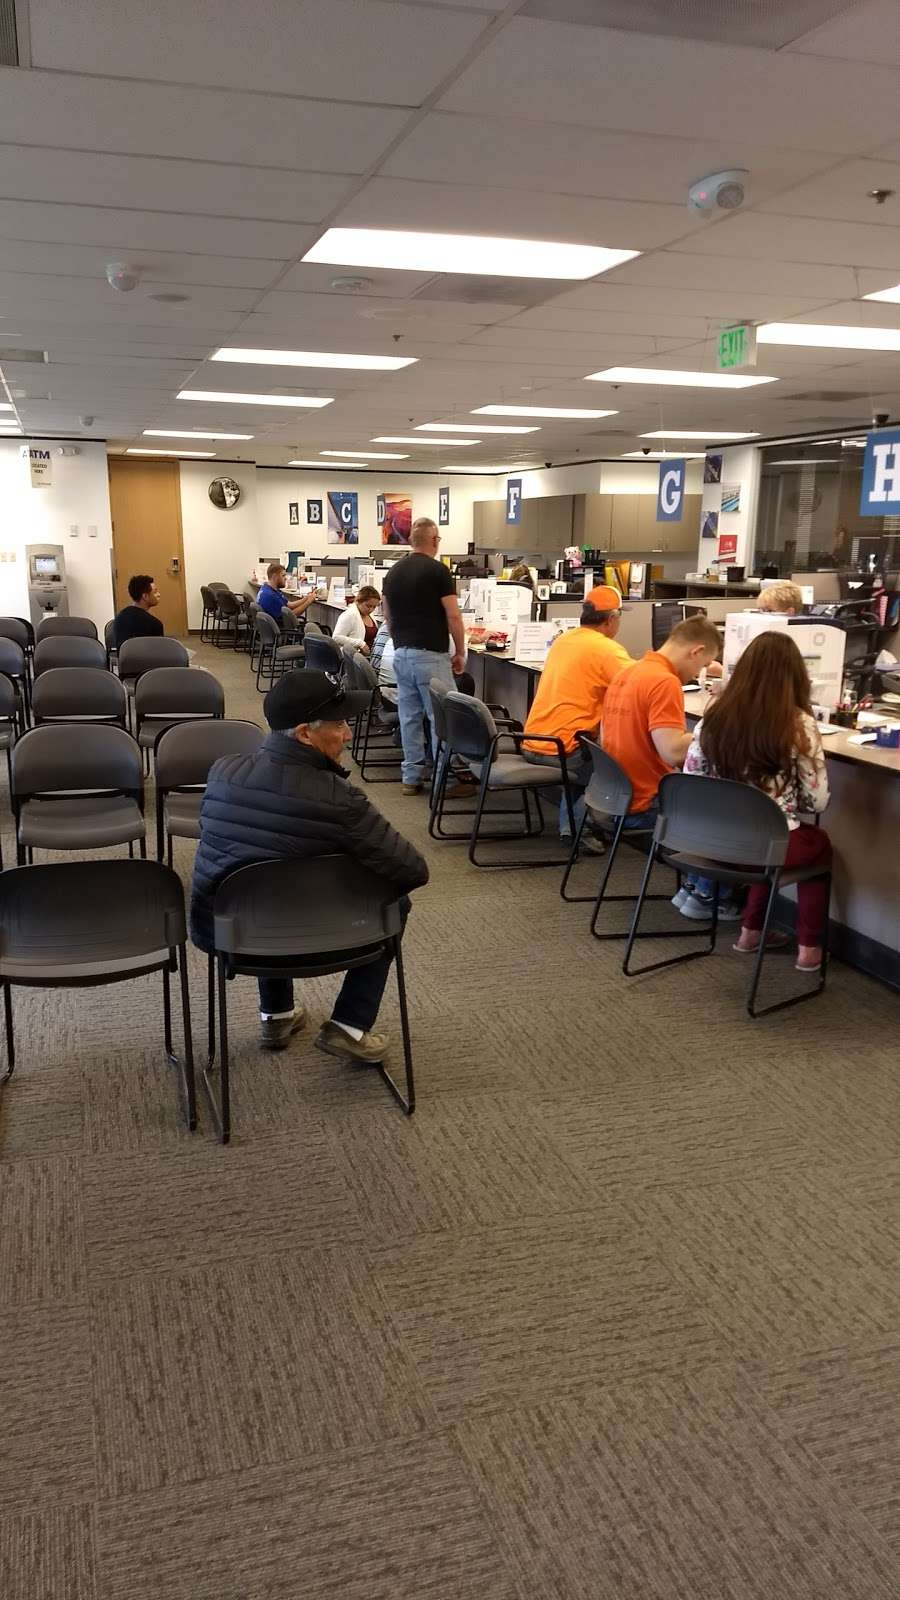 North Pecos Motor Vehicle - local government office  | Photo 2 of 4 | Address: 12200 N Pecos St, Denver, CO 80234, USA | Phone: (720) 523-6010